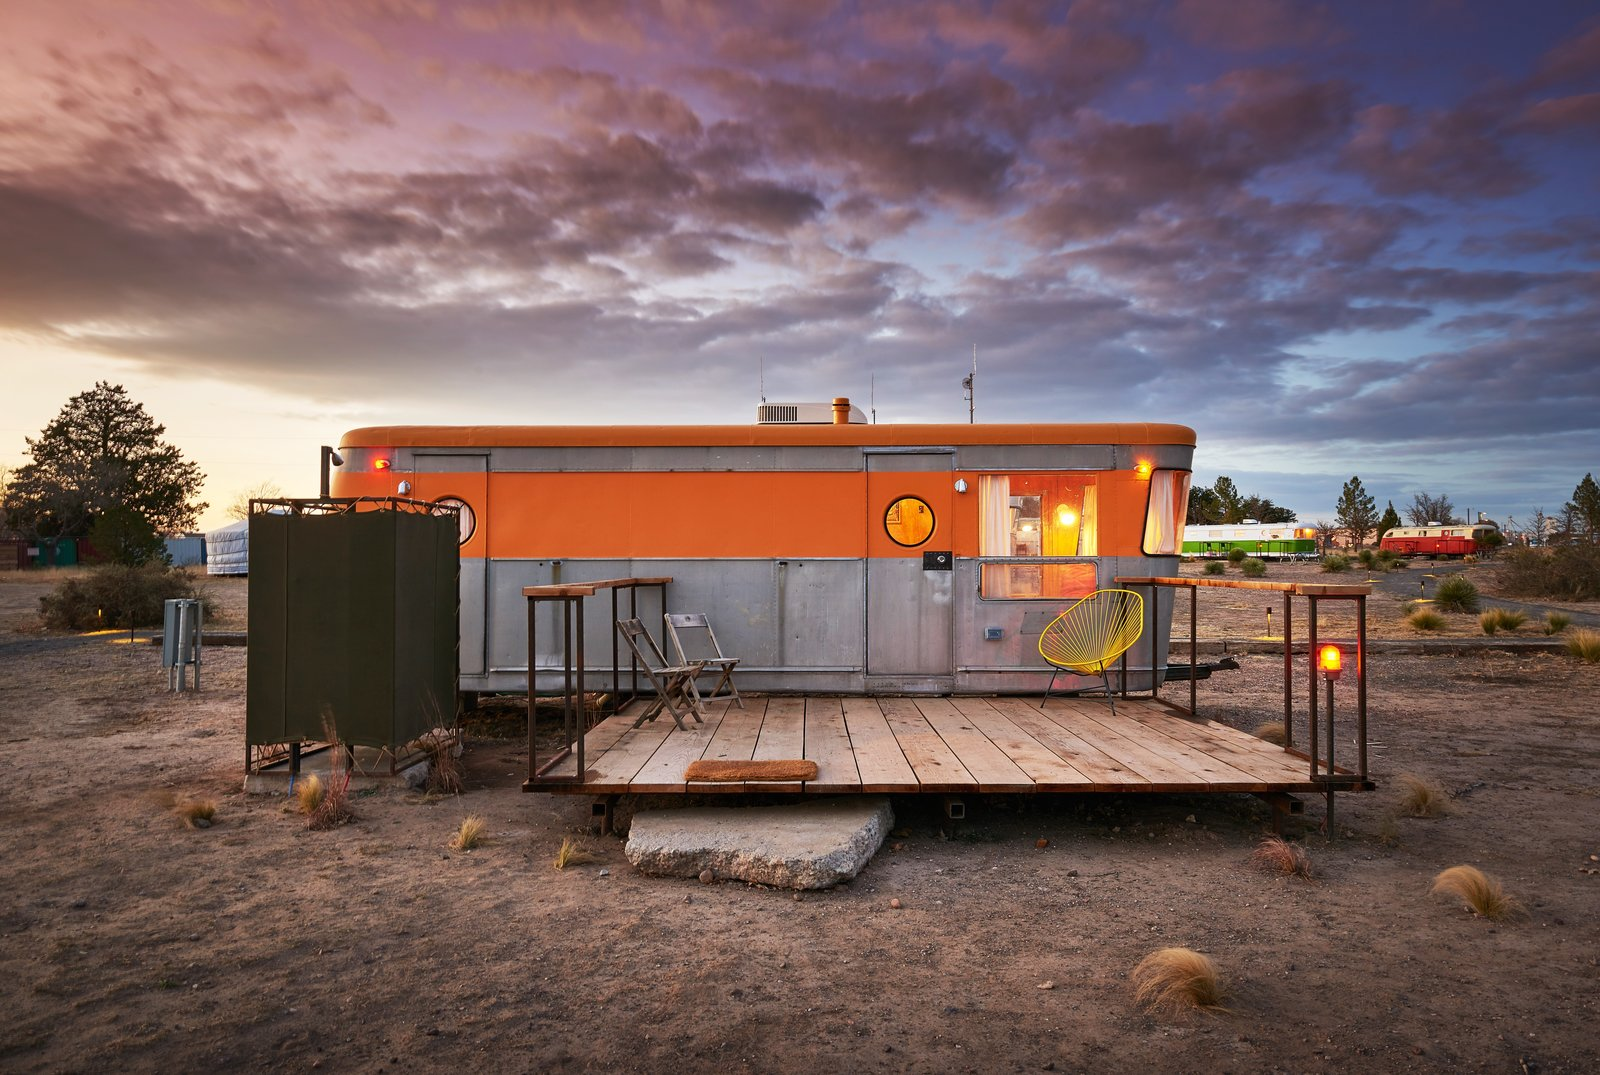 Exterior, Camper Building Type, Mid-Century Building Type, Metal Roof Material, and Metal Siding Material  Photo 1 of 12 in Let Your Creativity Soar at This Eclectic Hotel With Tents, Tepees, Yurts, and Trailers